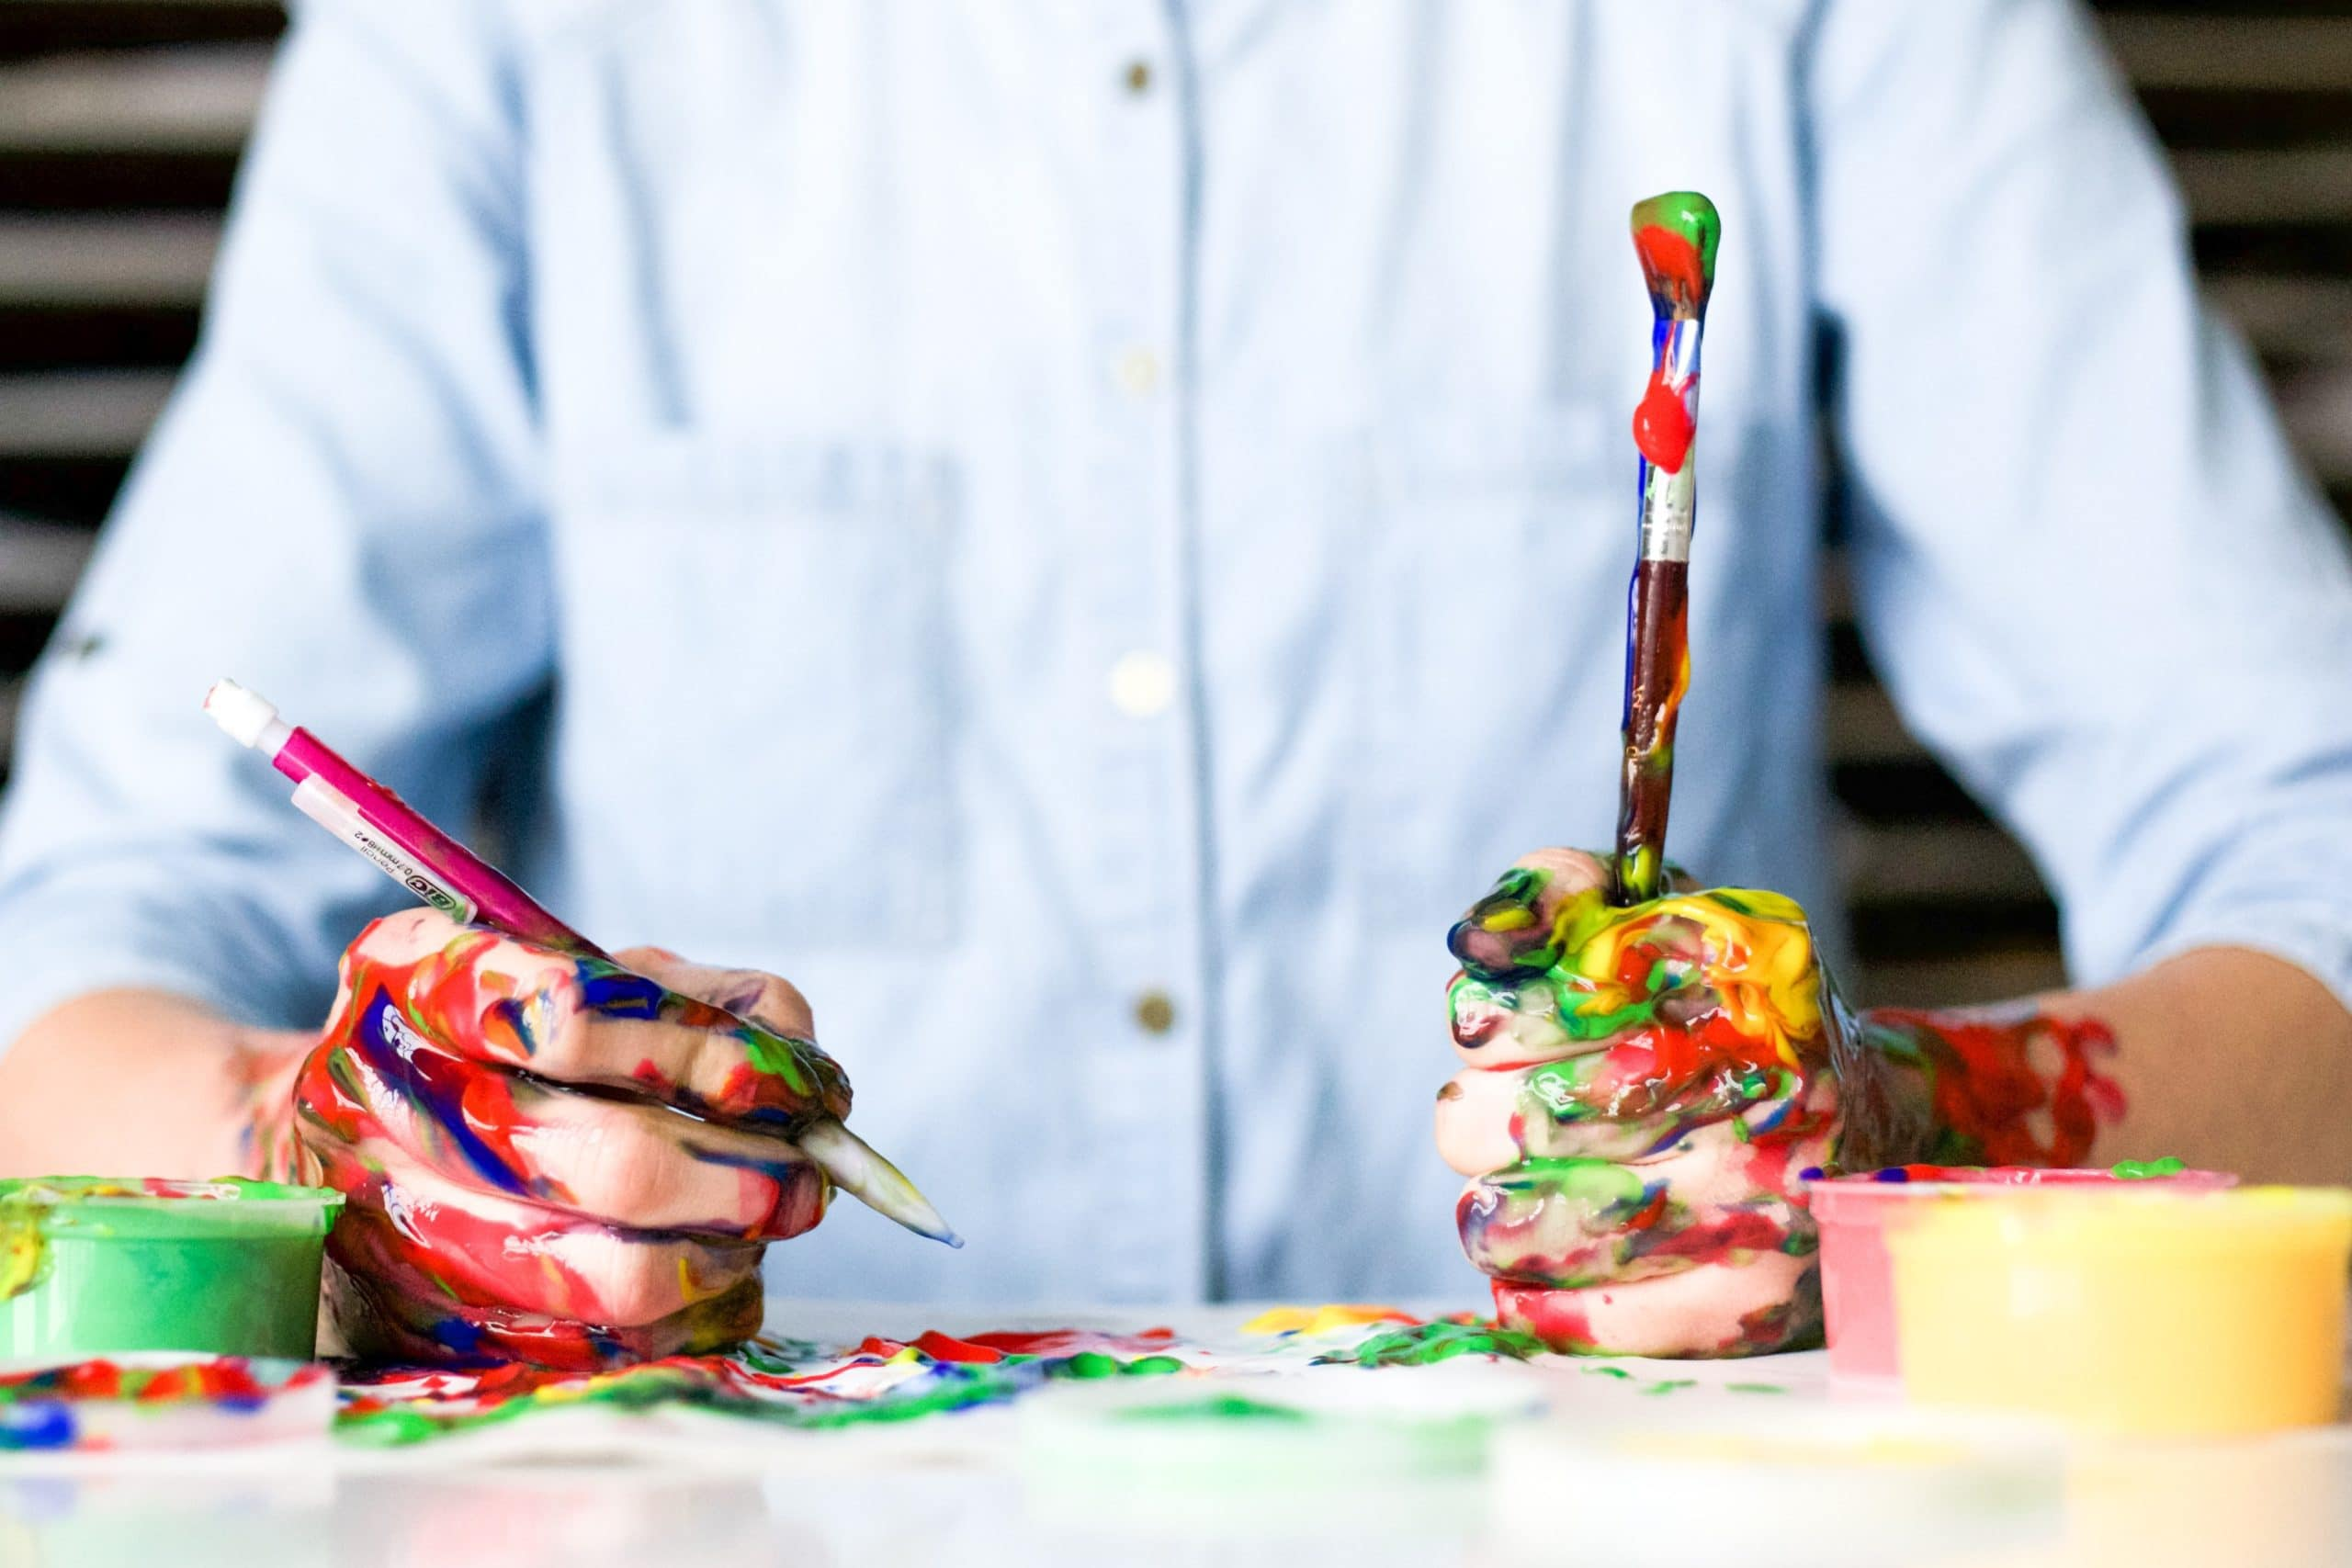 Why are so Many Scared of Creativity?